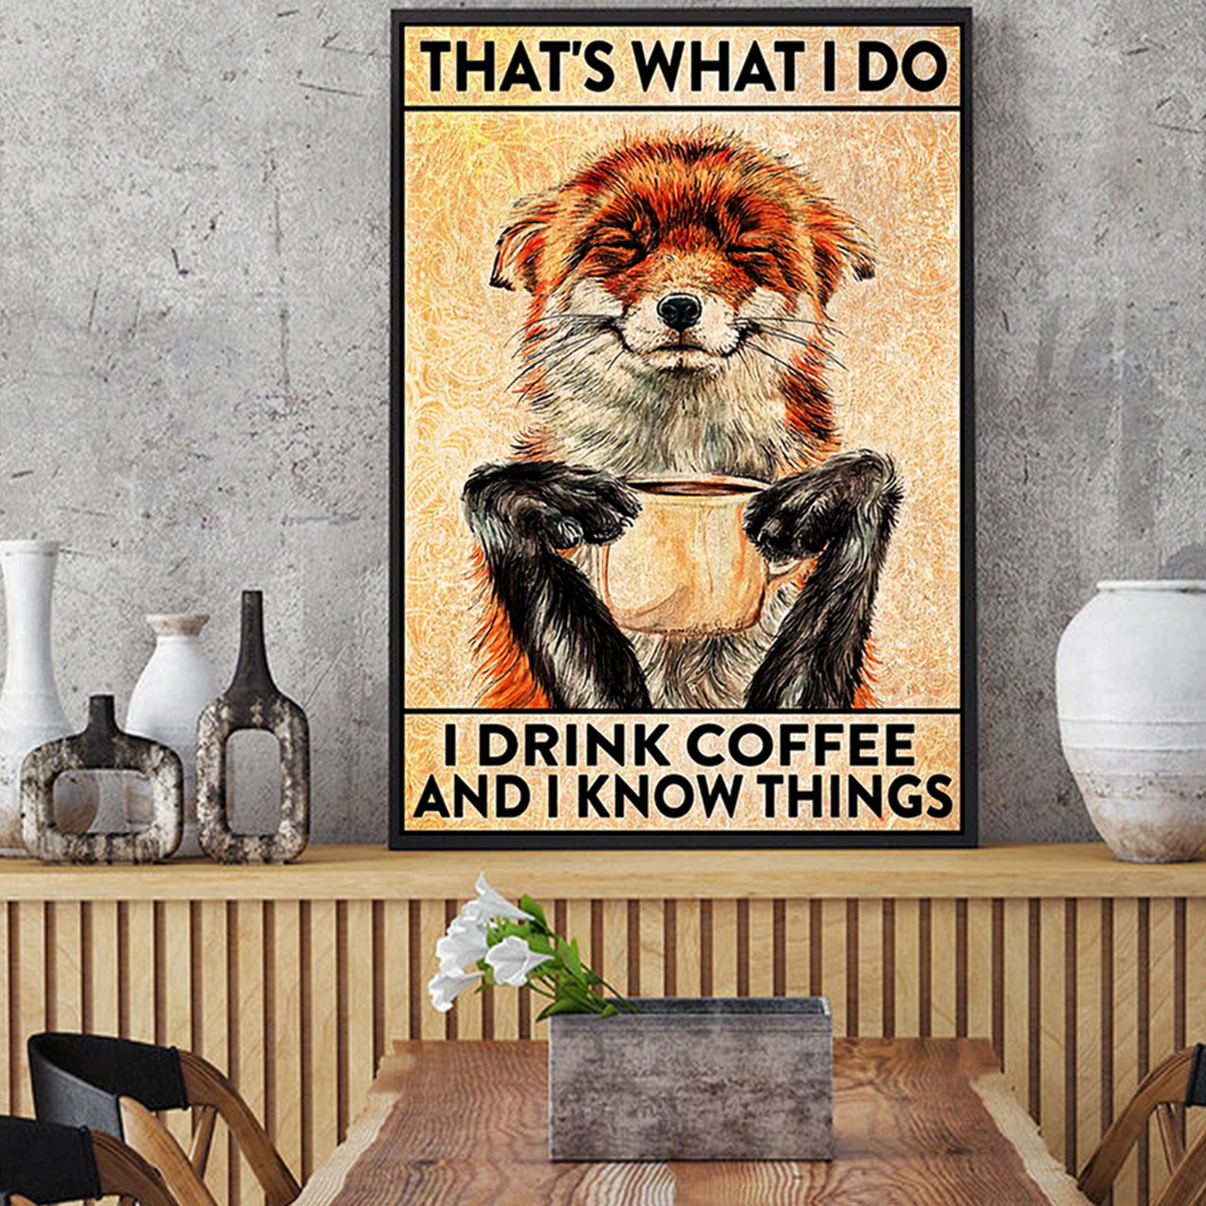 Fox that's what I do I drink coffee and I know things poster A1